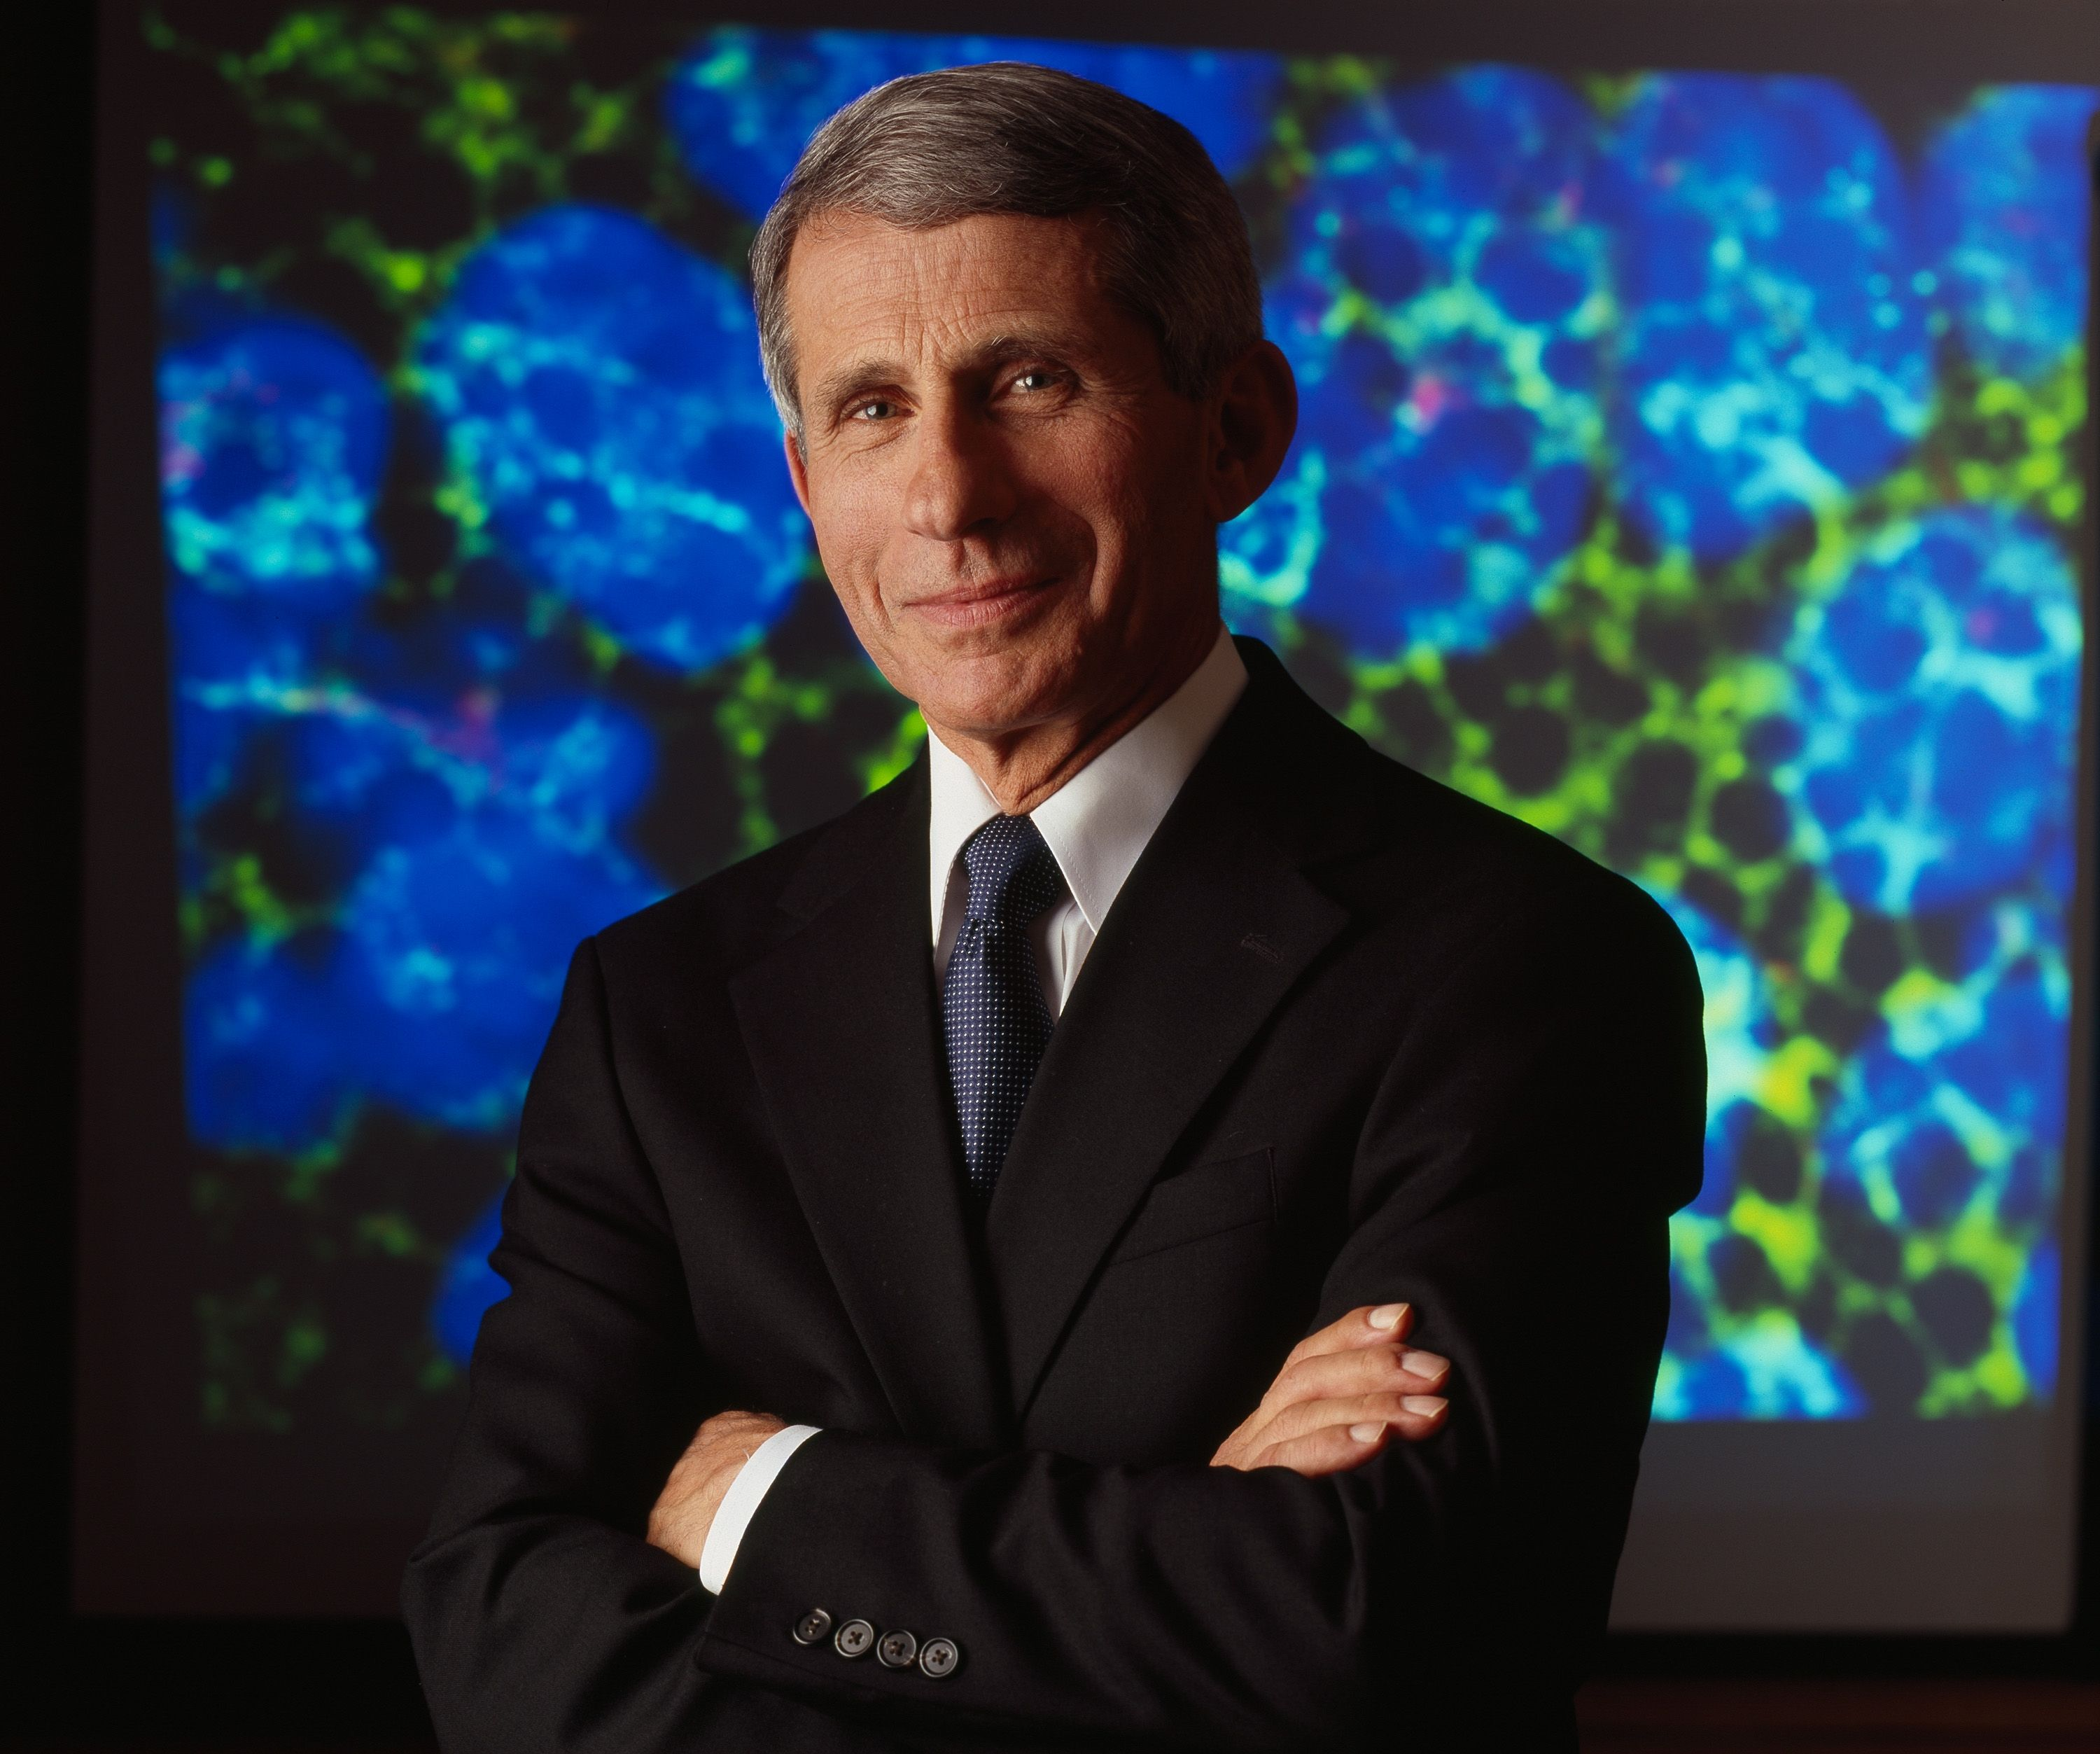 Anthony S. Fauci, M.D., was appointed Director of NIAID in